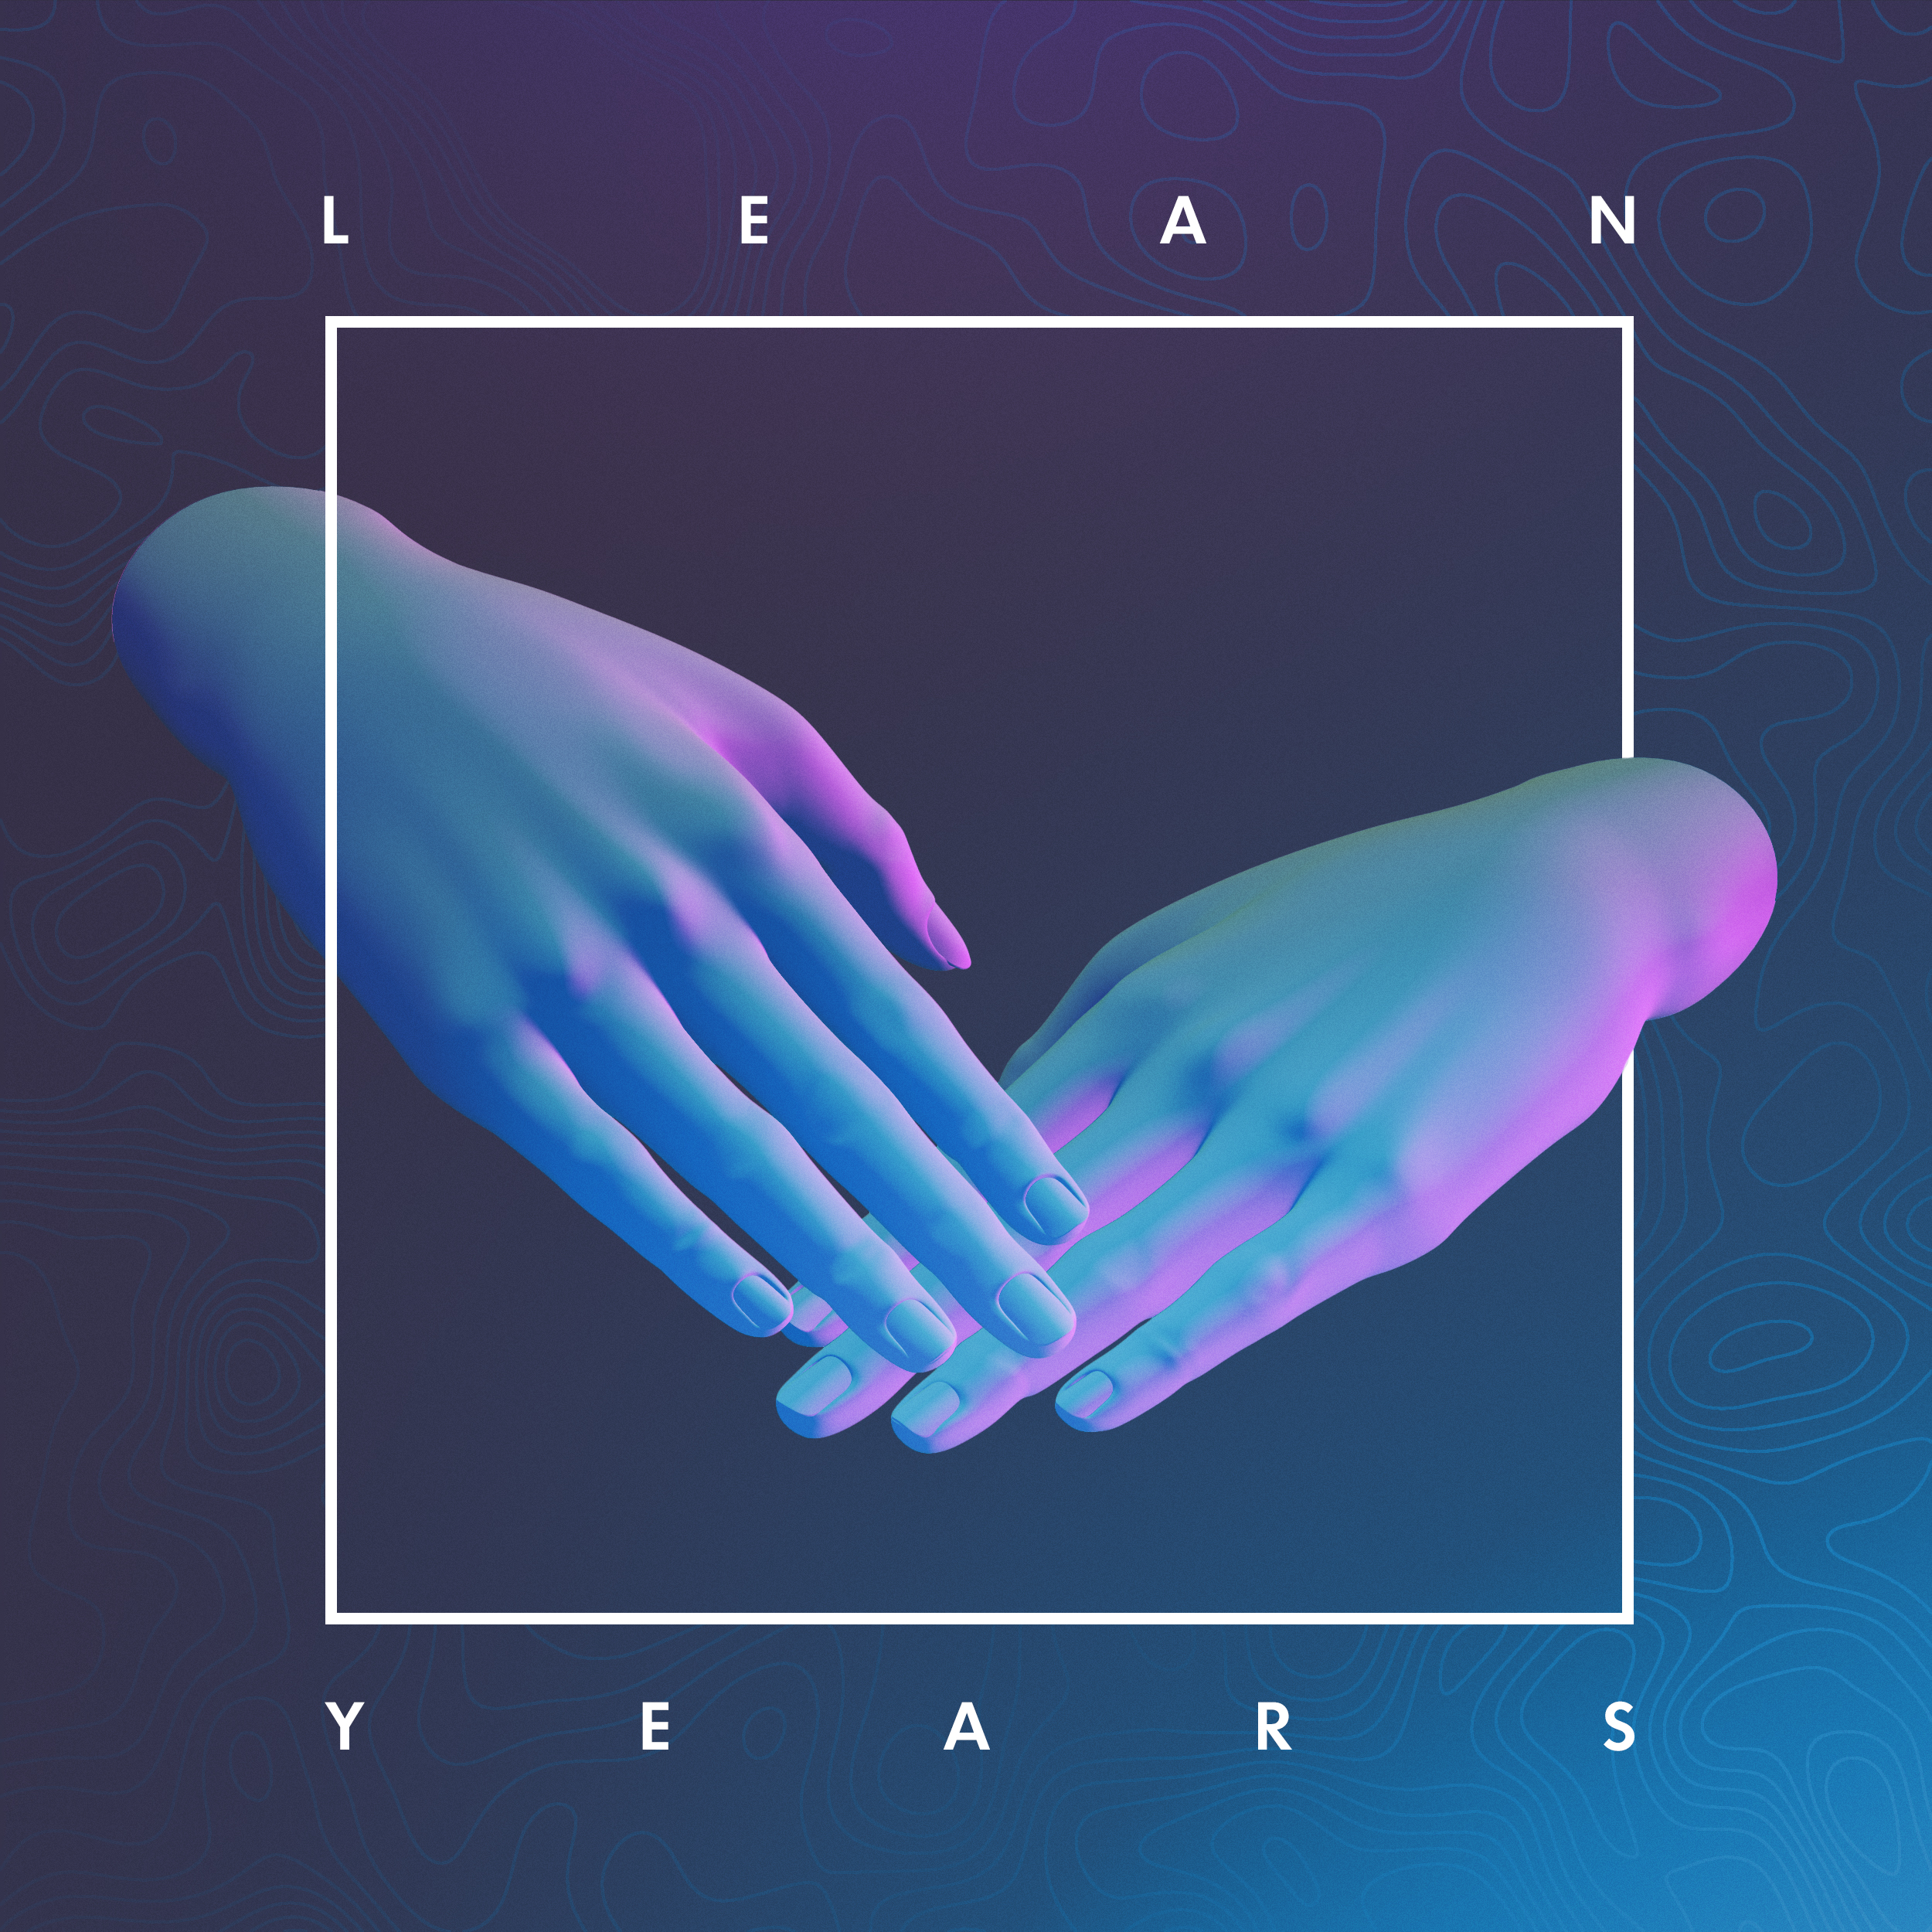 LEAN_ALBUM_COVER_V1_01.jpg